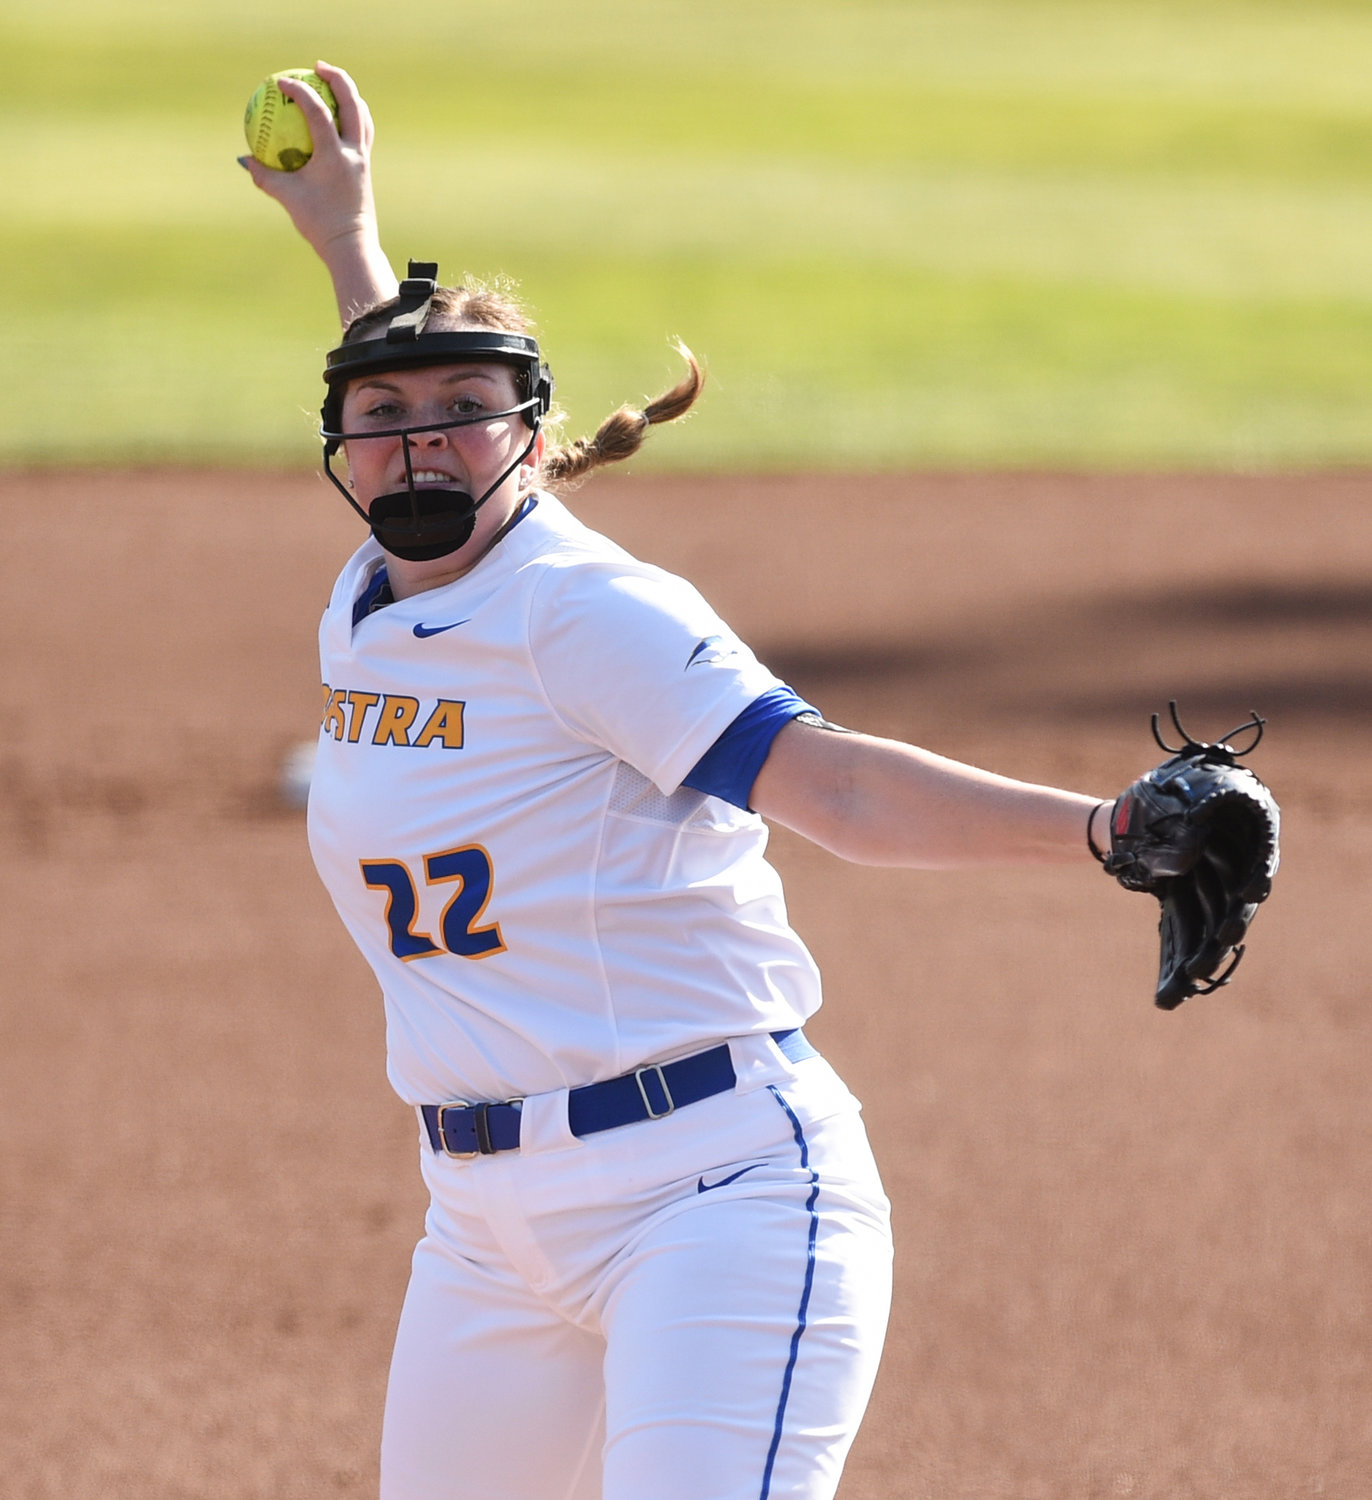 Madison Burns split 26 decisions as a freshman last spring with a 3.79 ERA and 82 strikeouts.